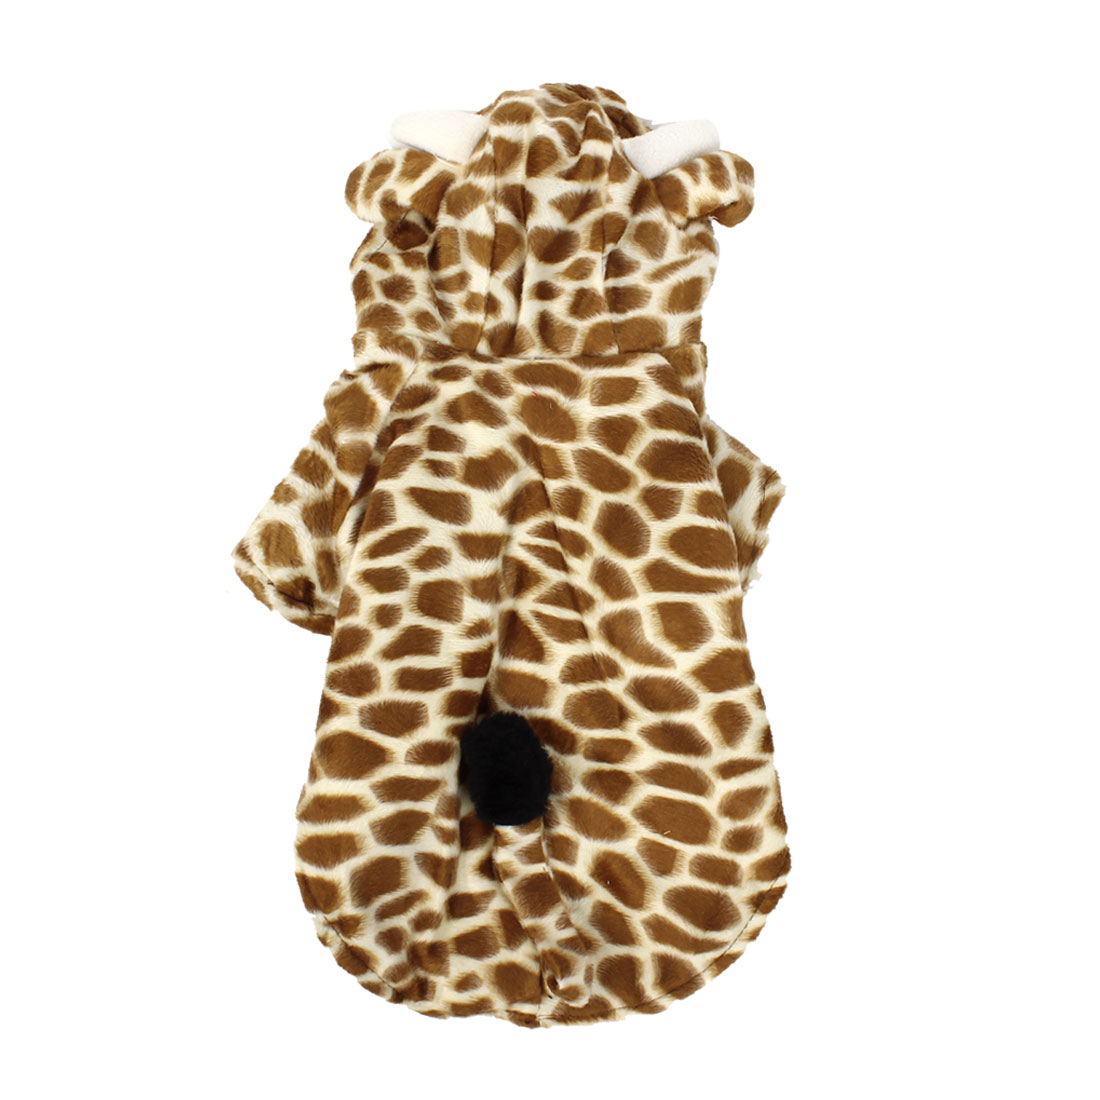 Winter Warm Giraffe Shape Hoodie Single Breasted Sleeved Pet Dog Doggy Apparel Coat Clothes Coffee Color Beige S